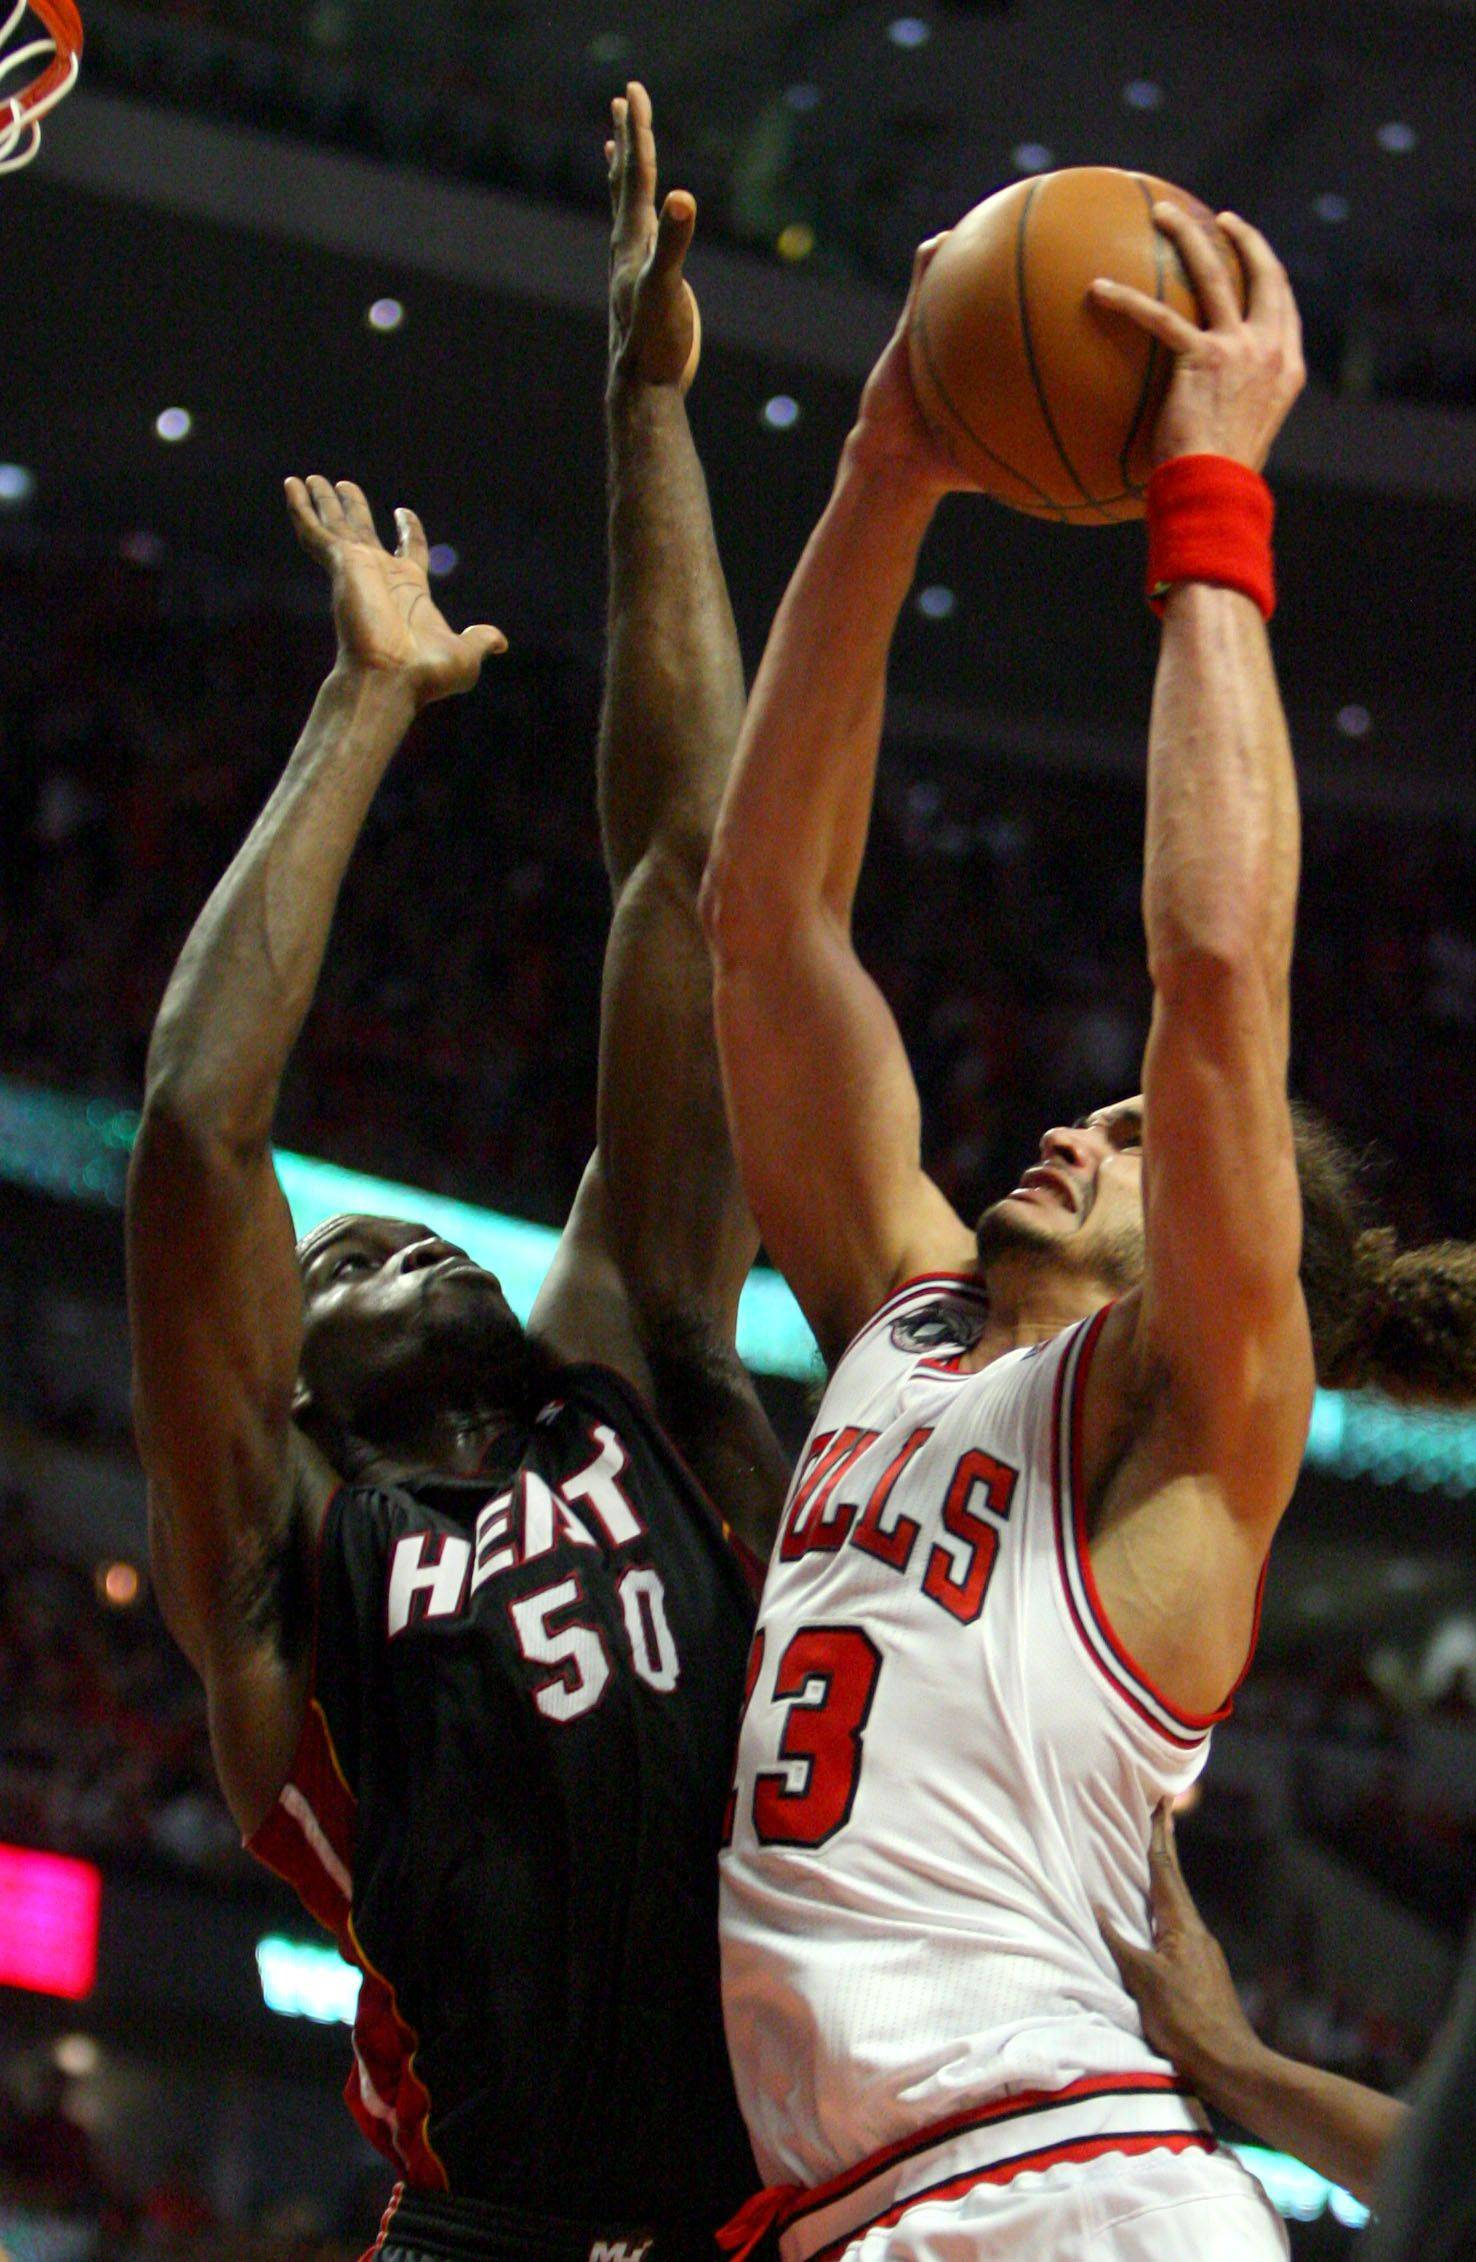 Chicago Bulls center Joakim Noah goes in for a dunk on Miami Heat center Joel Anthony.